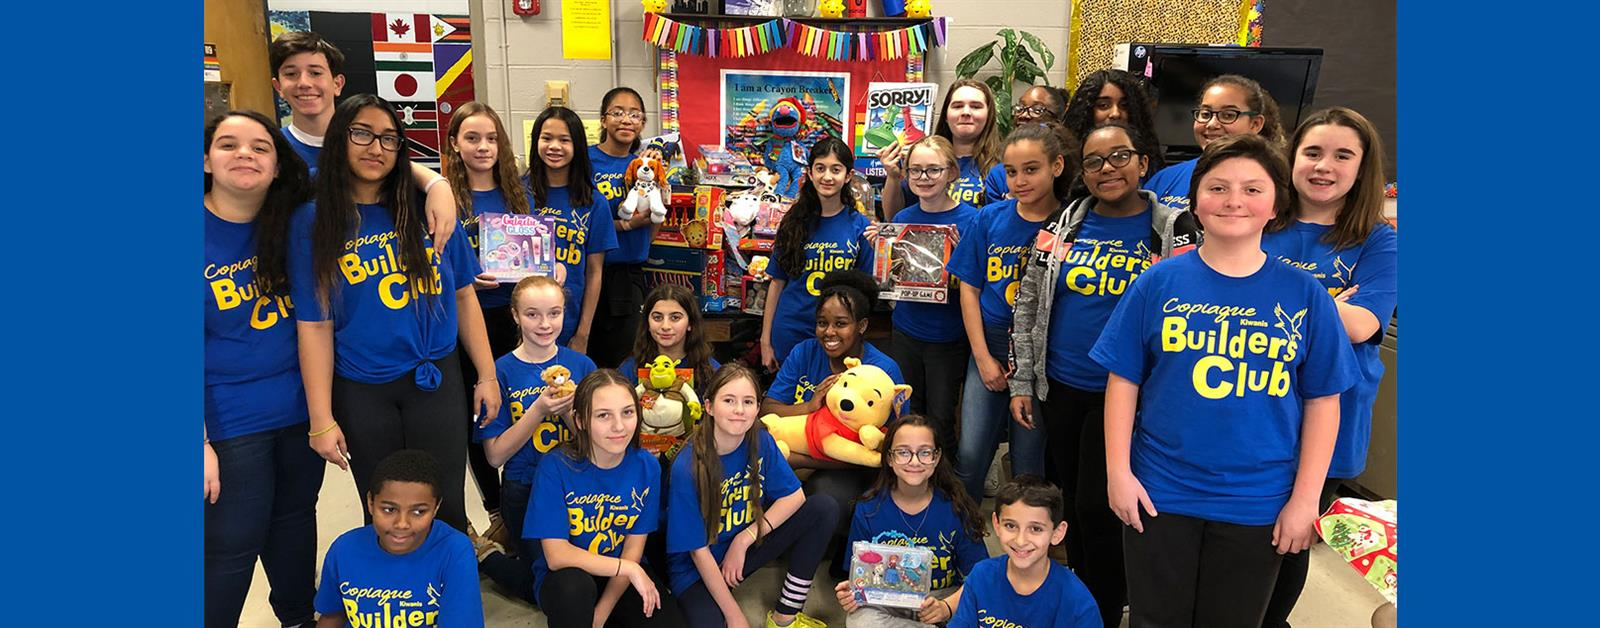 Builders Club Toy Drive Benefits Local Children photo